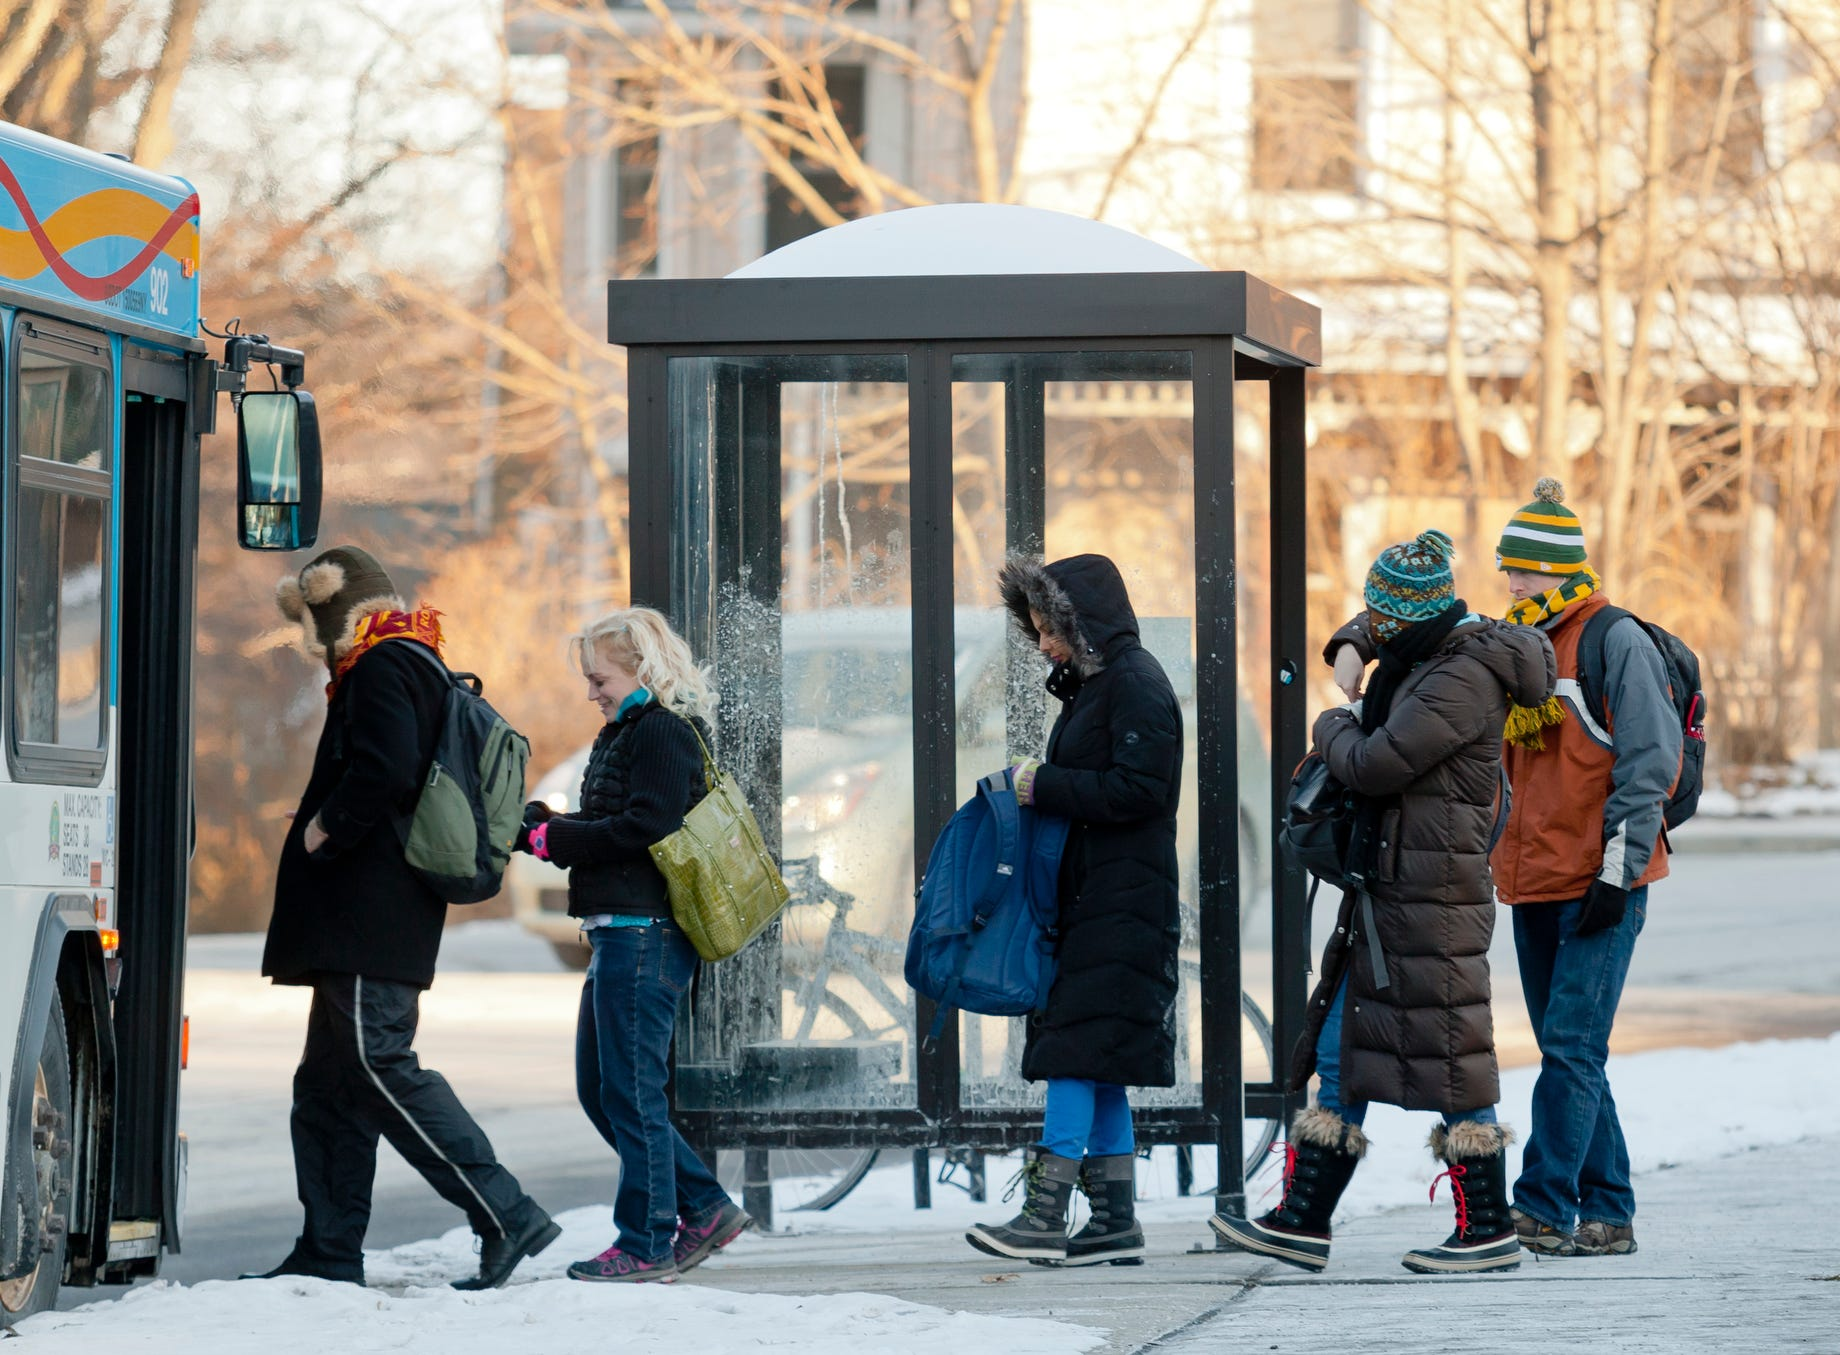 Tompkins Consolidated Area Transit passengers board the number 10 bus after waiting in the zero degree cold Tuesday morning at the intersection of Linn and University Streets in Ithaca. 2014.